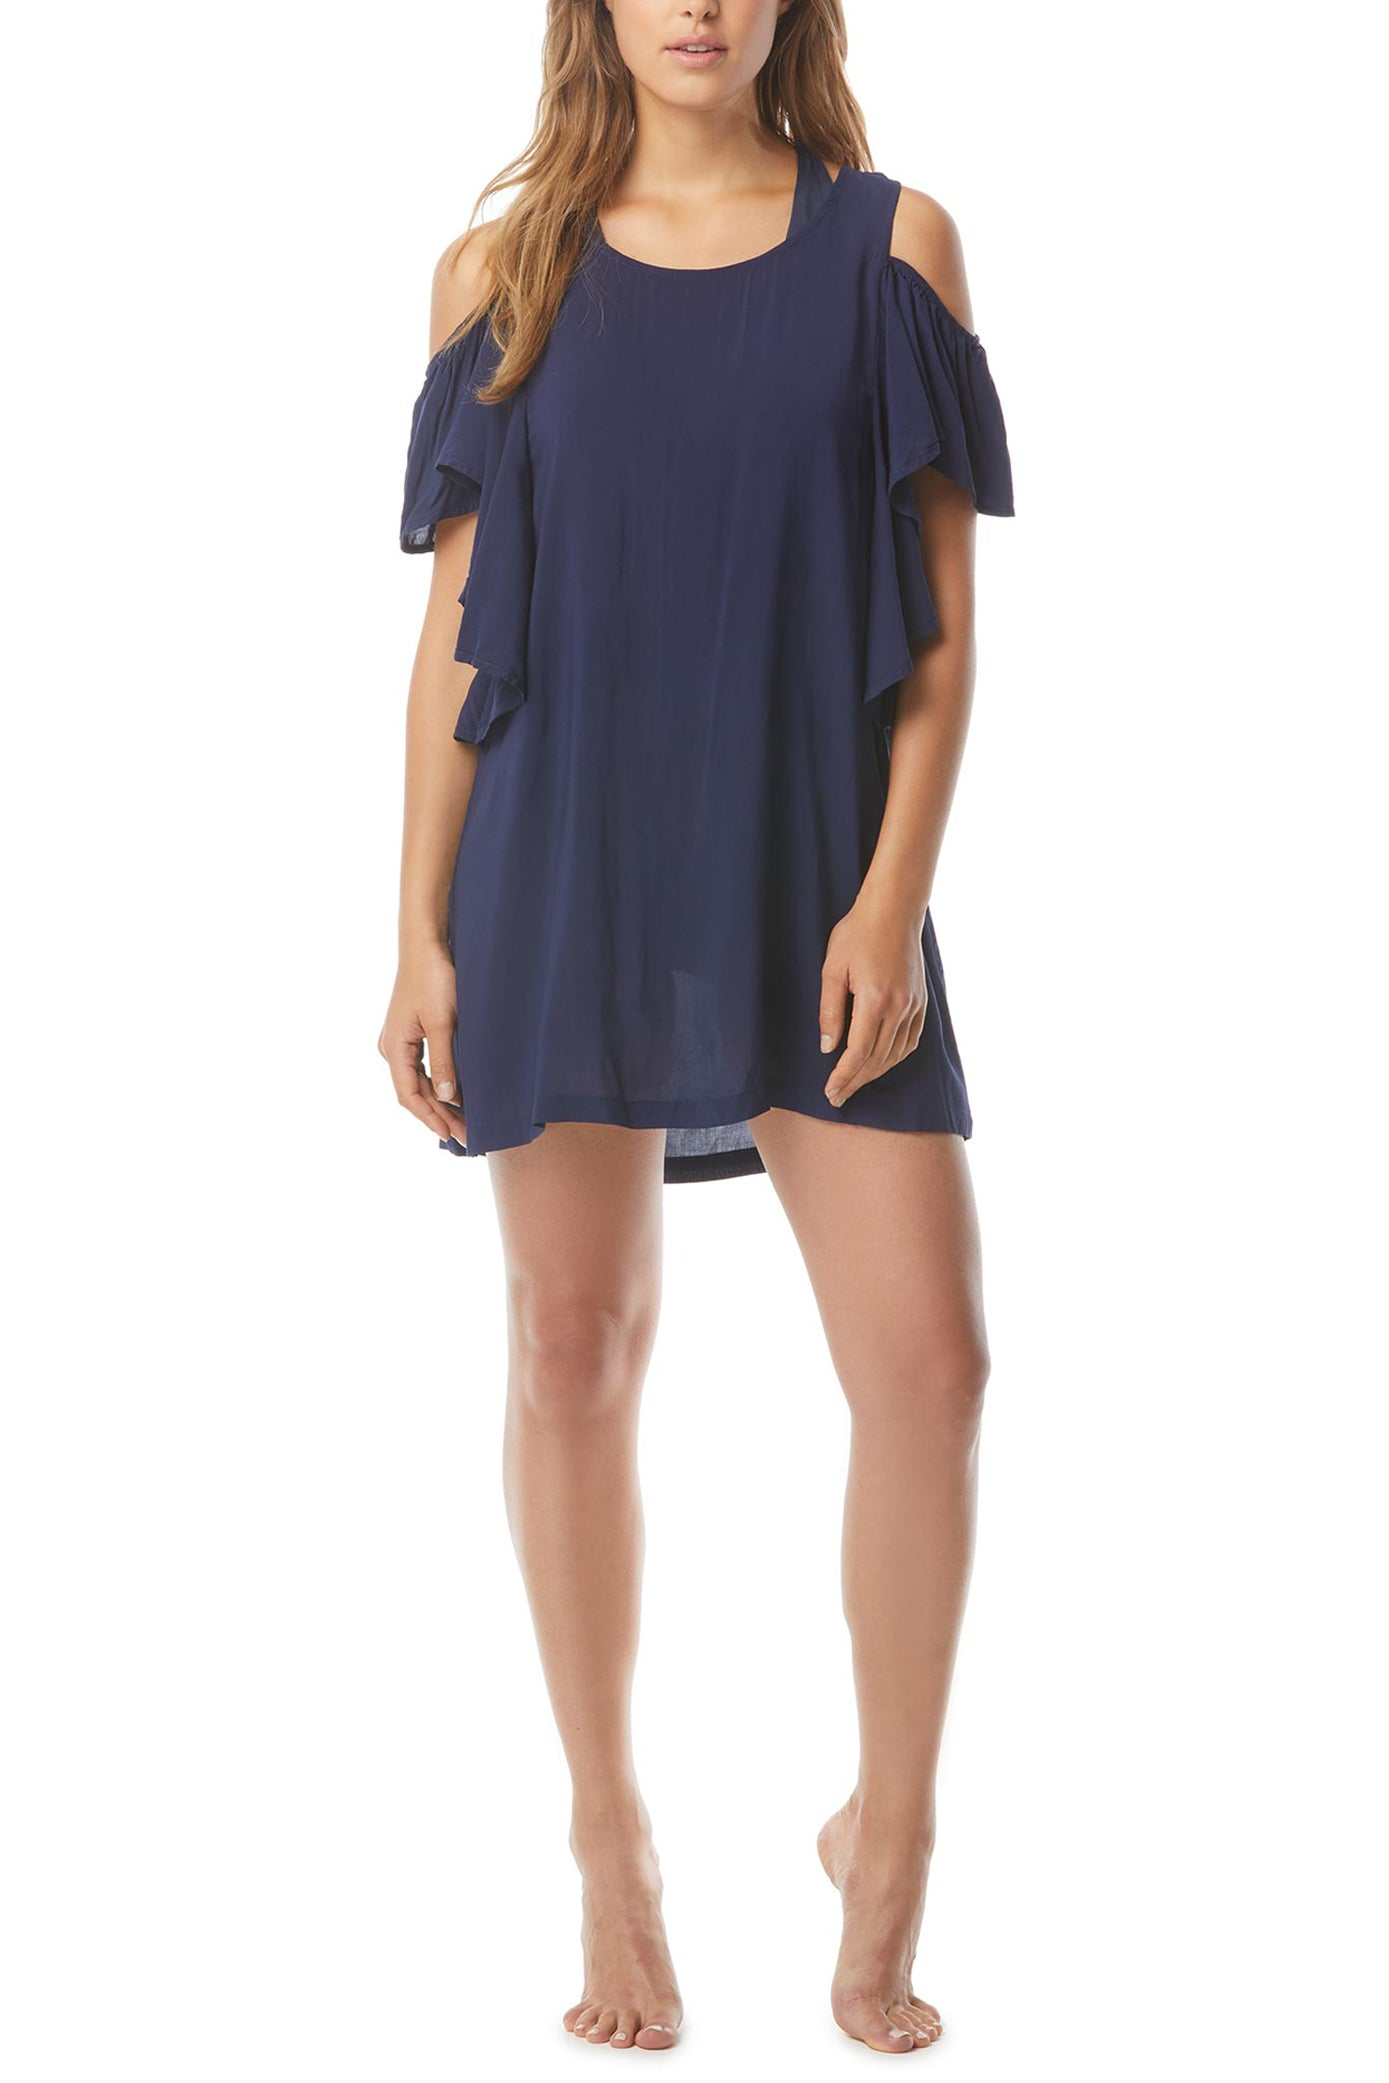 Urban Gypsy cover up  Cold shoulder ruffle Navy blue 100% Rayon